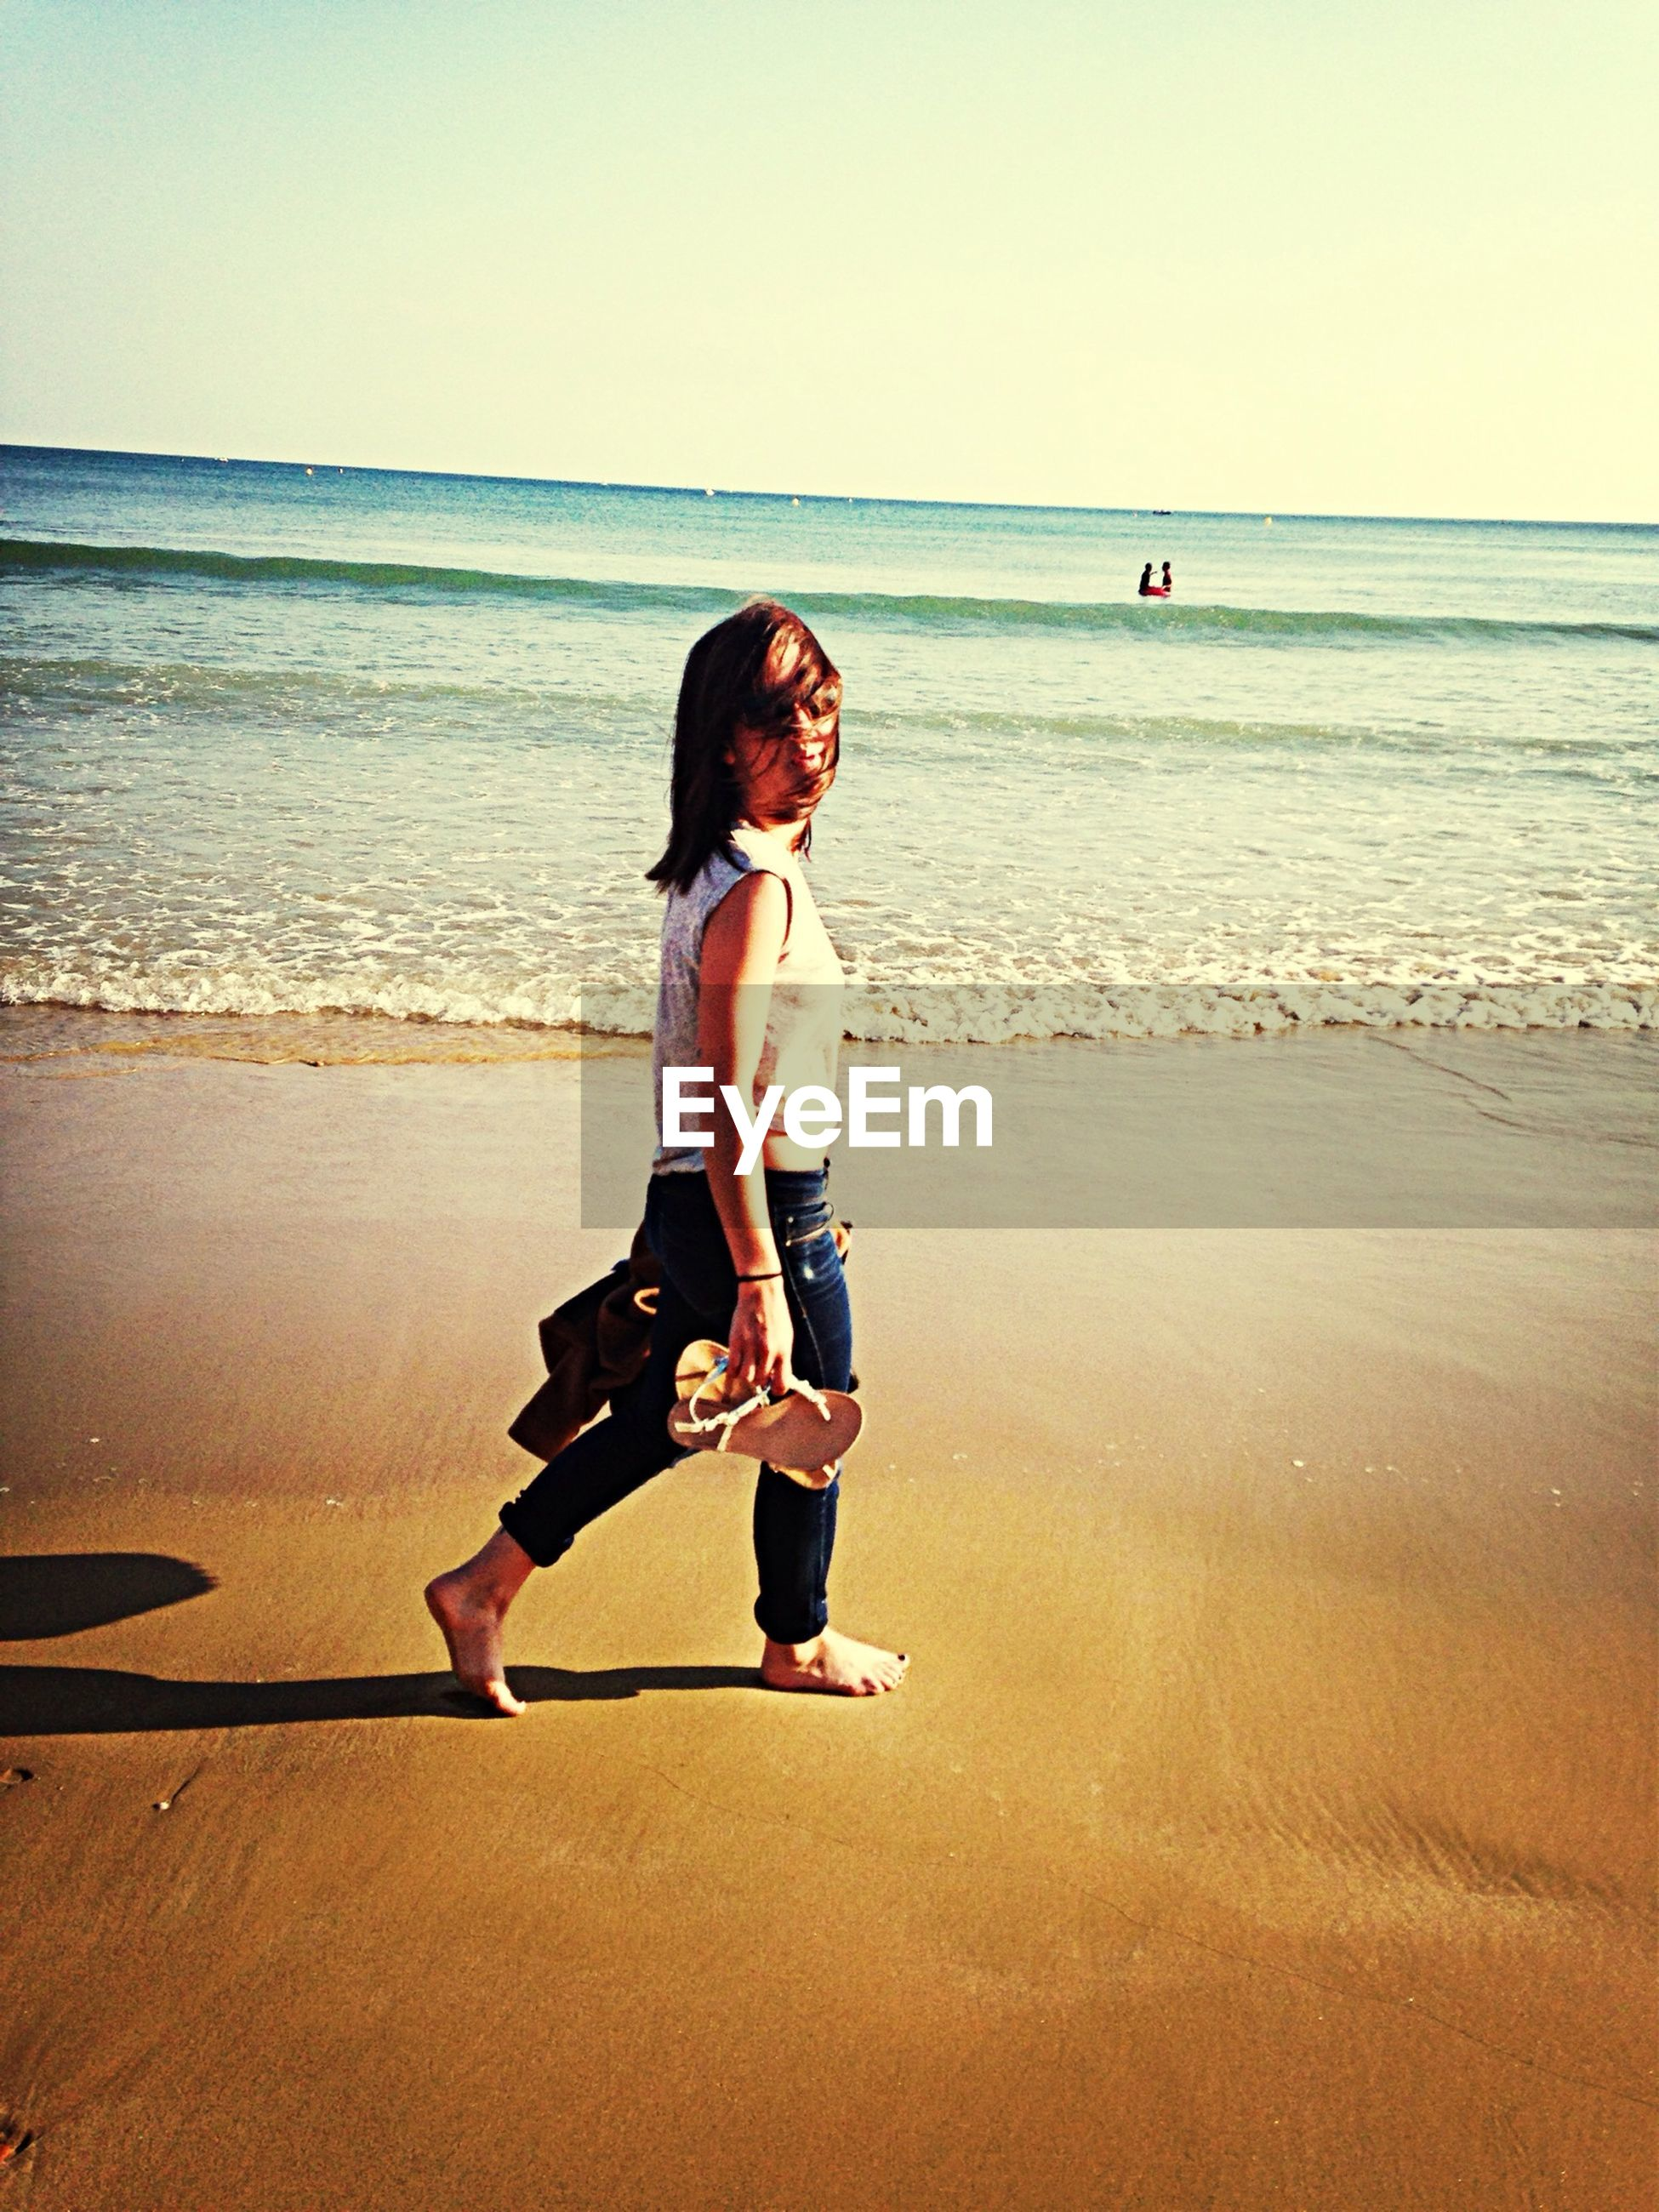 sea, beach, horizon over water, water, shore, sand, clear sky, full length, leisure activity, lifestyles, vacations, casual clothing, tranquility, tranquil scene, beauty in nature, rear view, standing, scenics